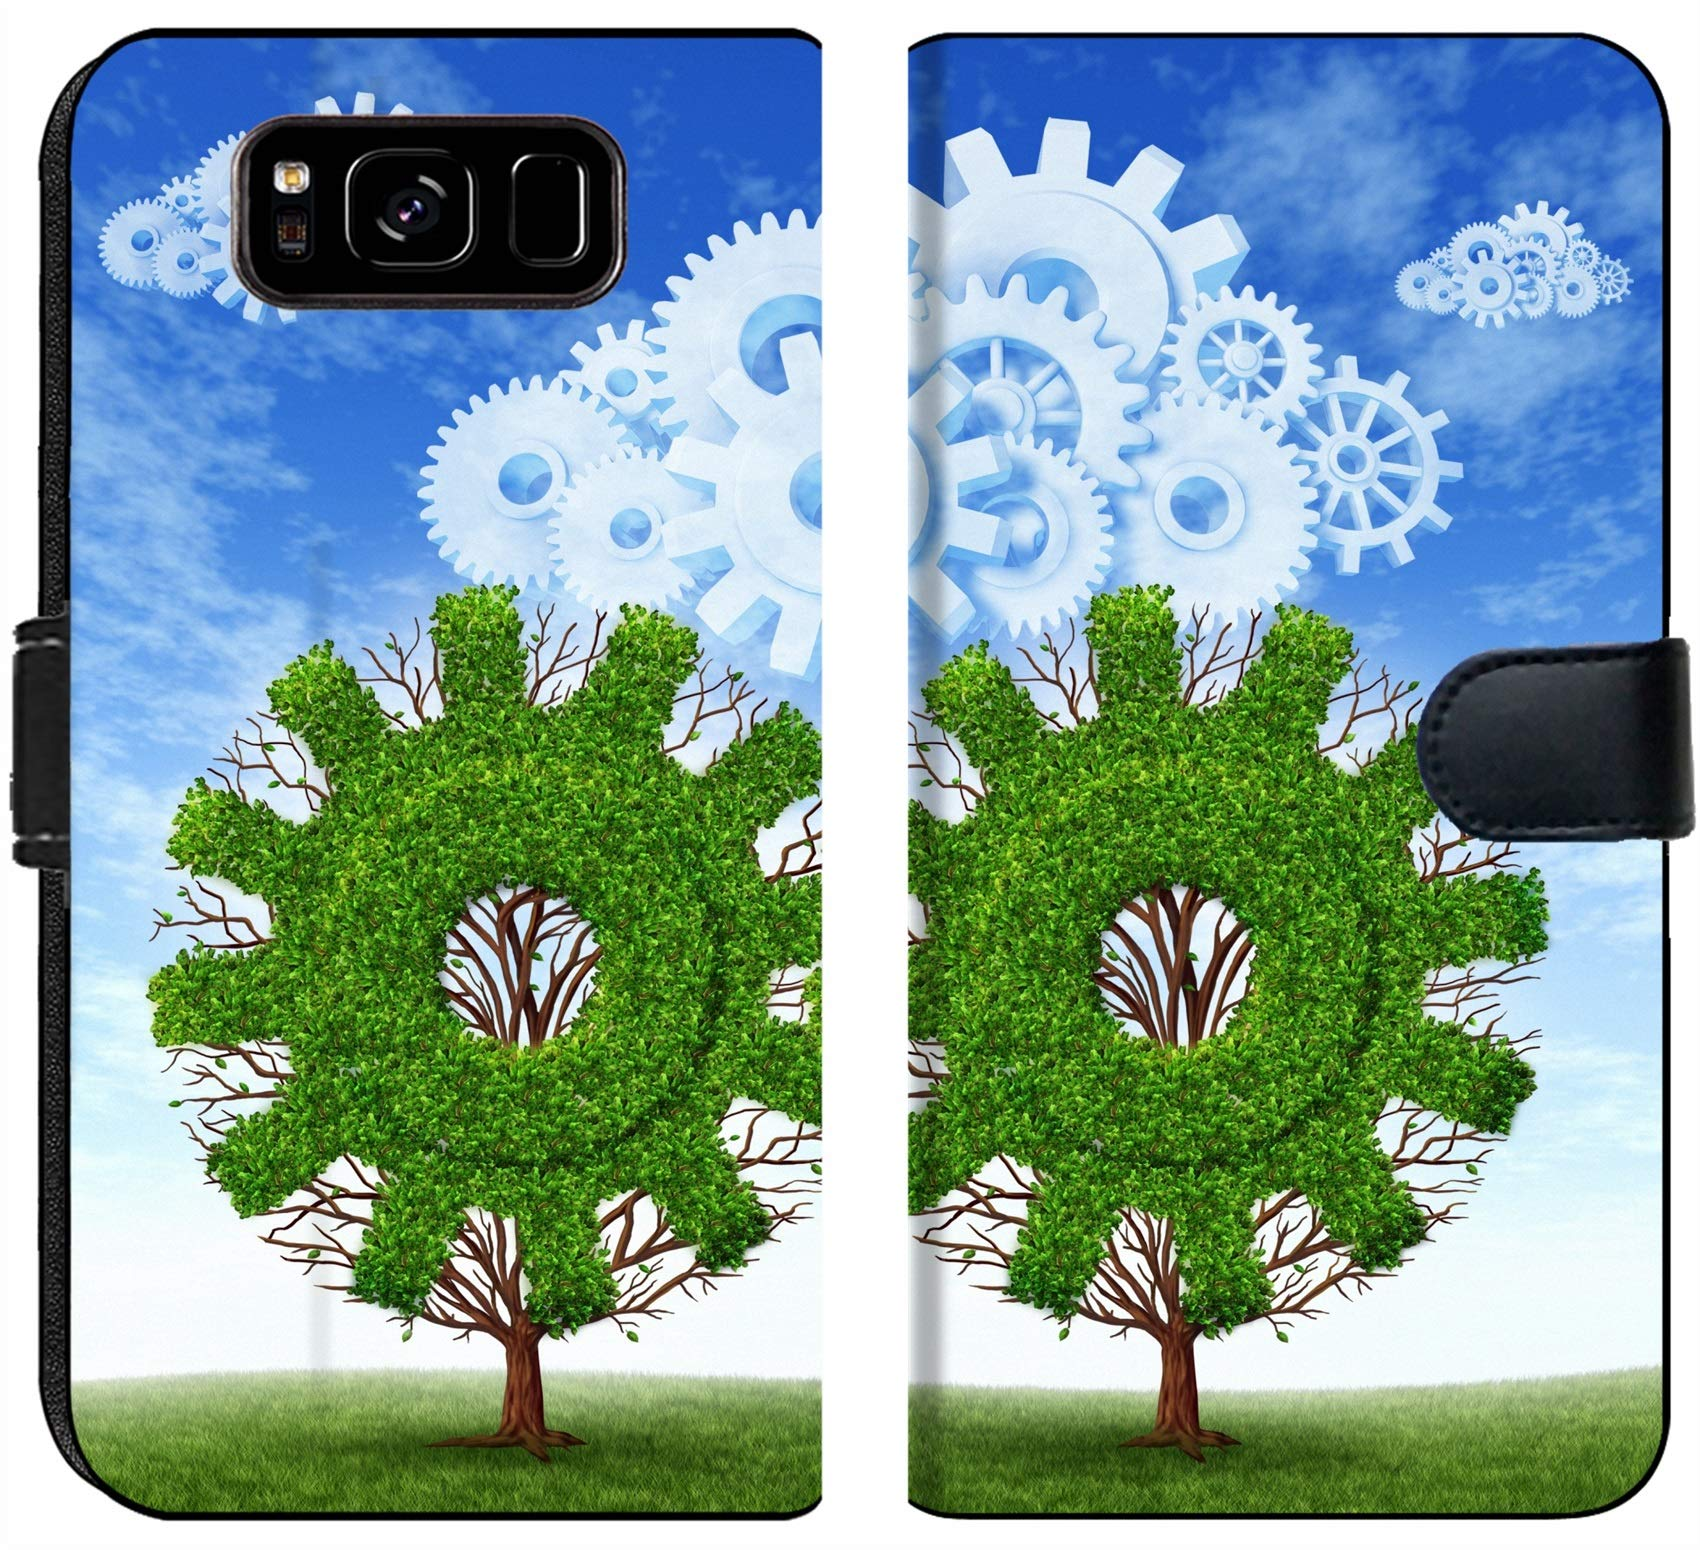 Liili Premium Samsung Galaxy S8 Flip Micro Fabric Wallet Case Cloud computing growth and the future of virtual storage and internet based remote desktop illustrated by t by Liili